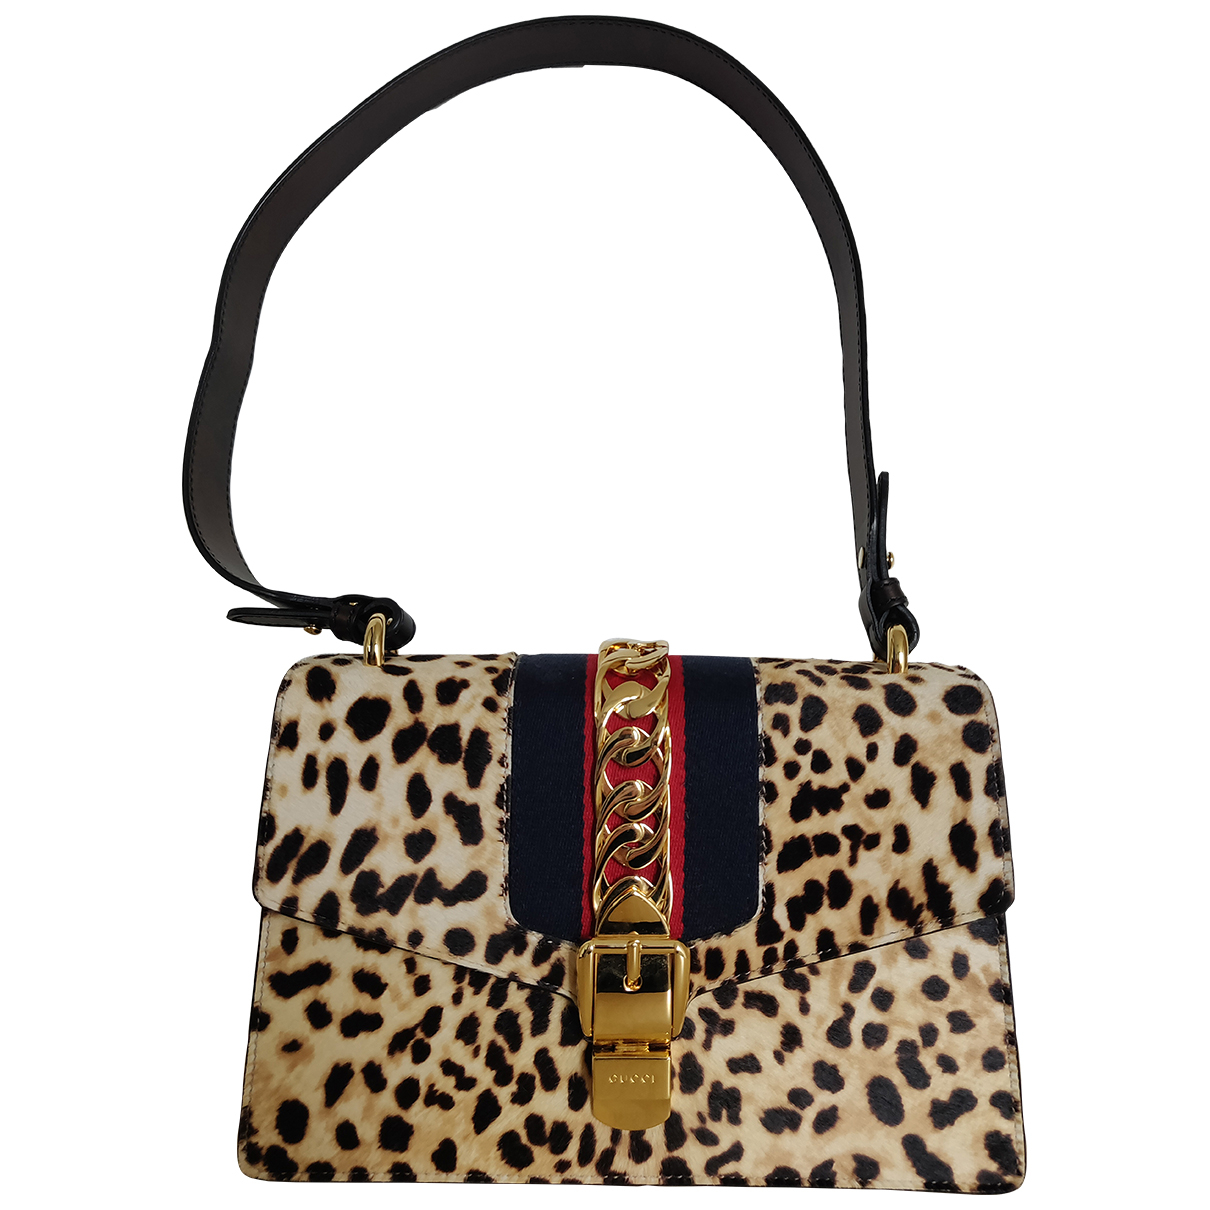 Gucci Sylvie Brown Pony-style calfskin handbag for Women \N